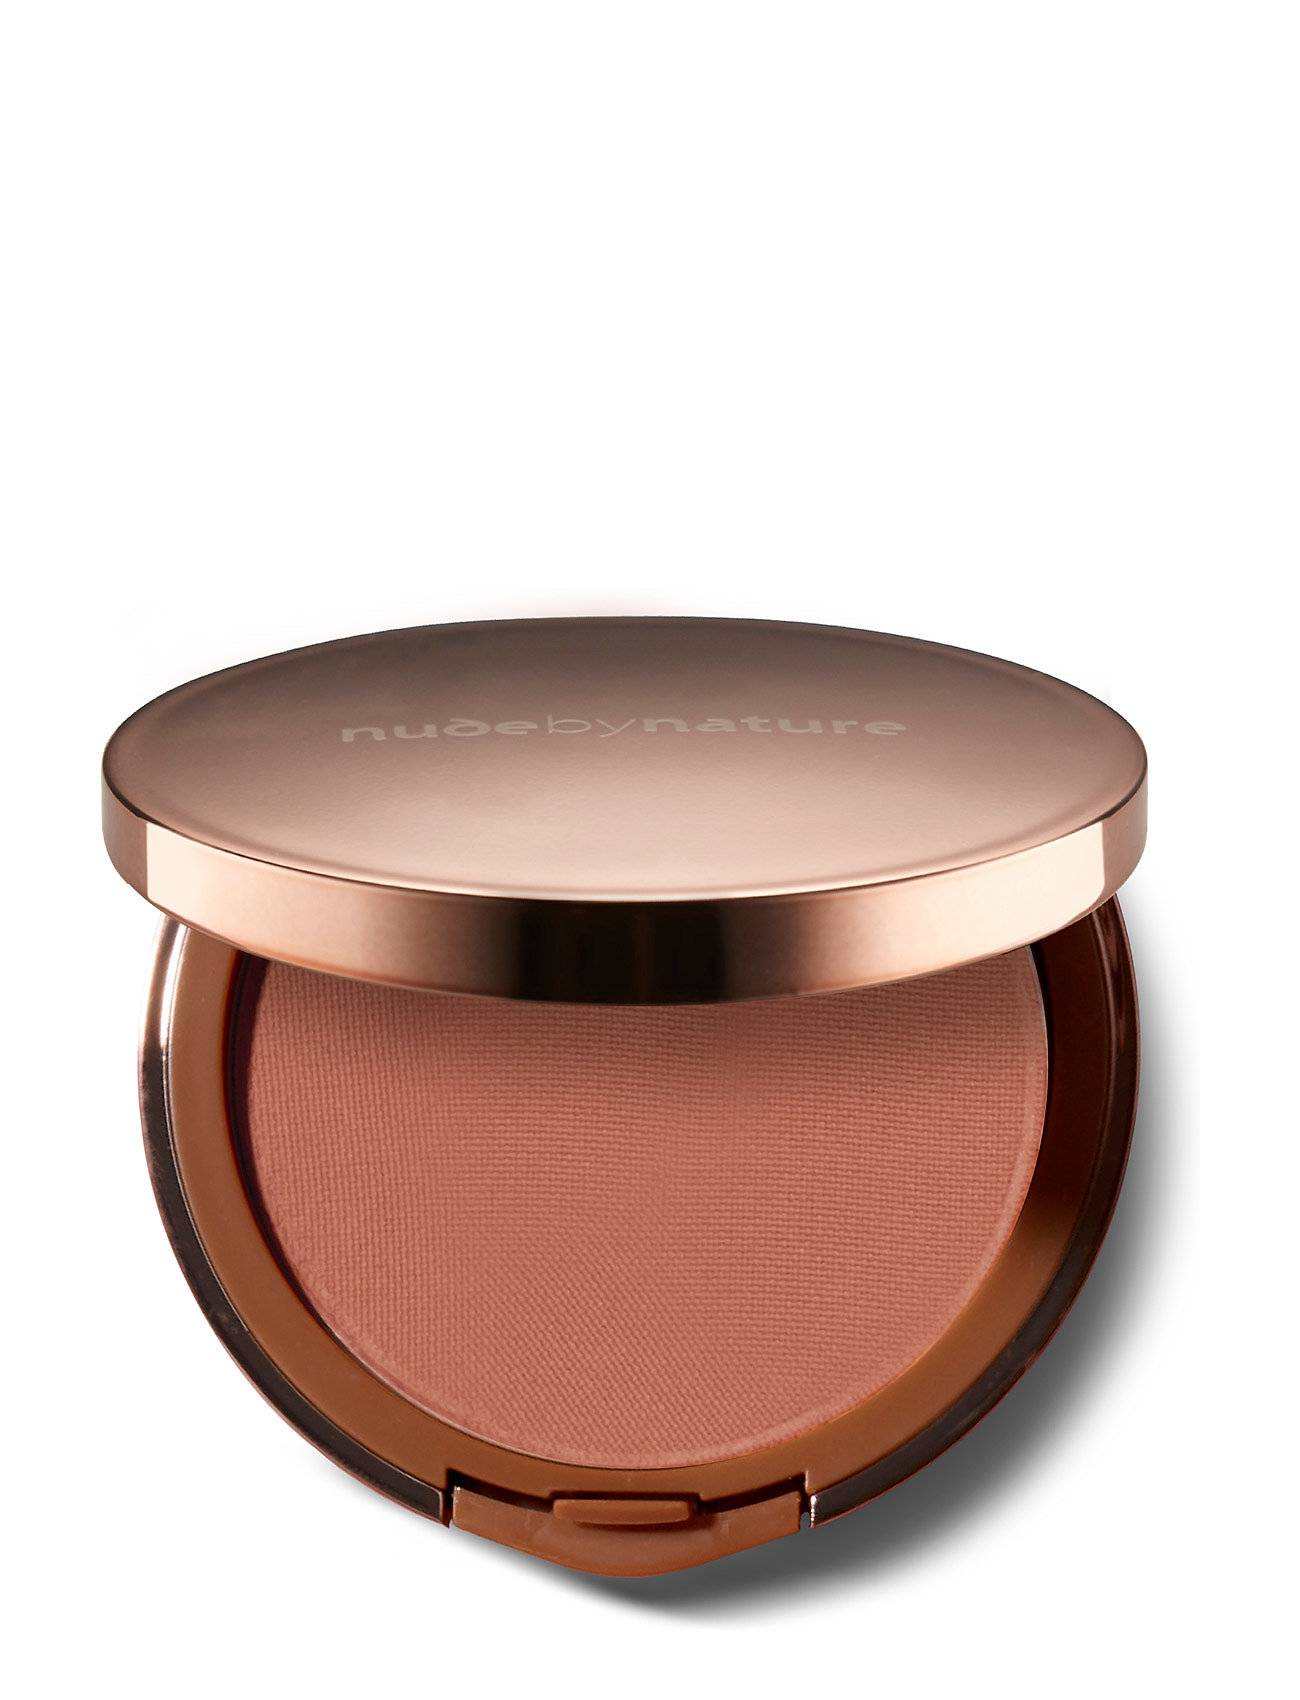 Nude by Nature Cashmere Pressed Blush Desert Rose Beauty WOMEN Makeup Face Blush Vaaleanpunainen Nude By Nature